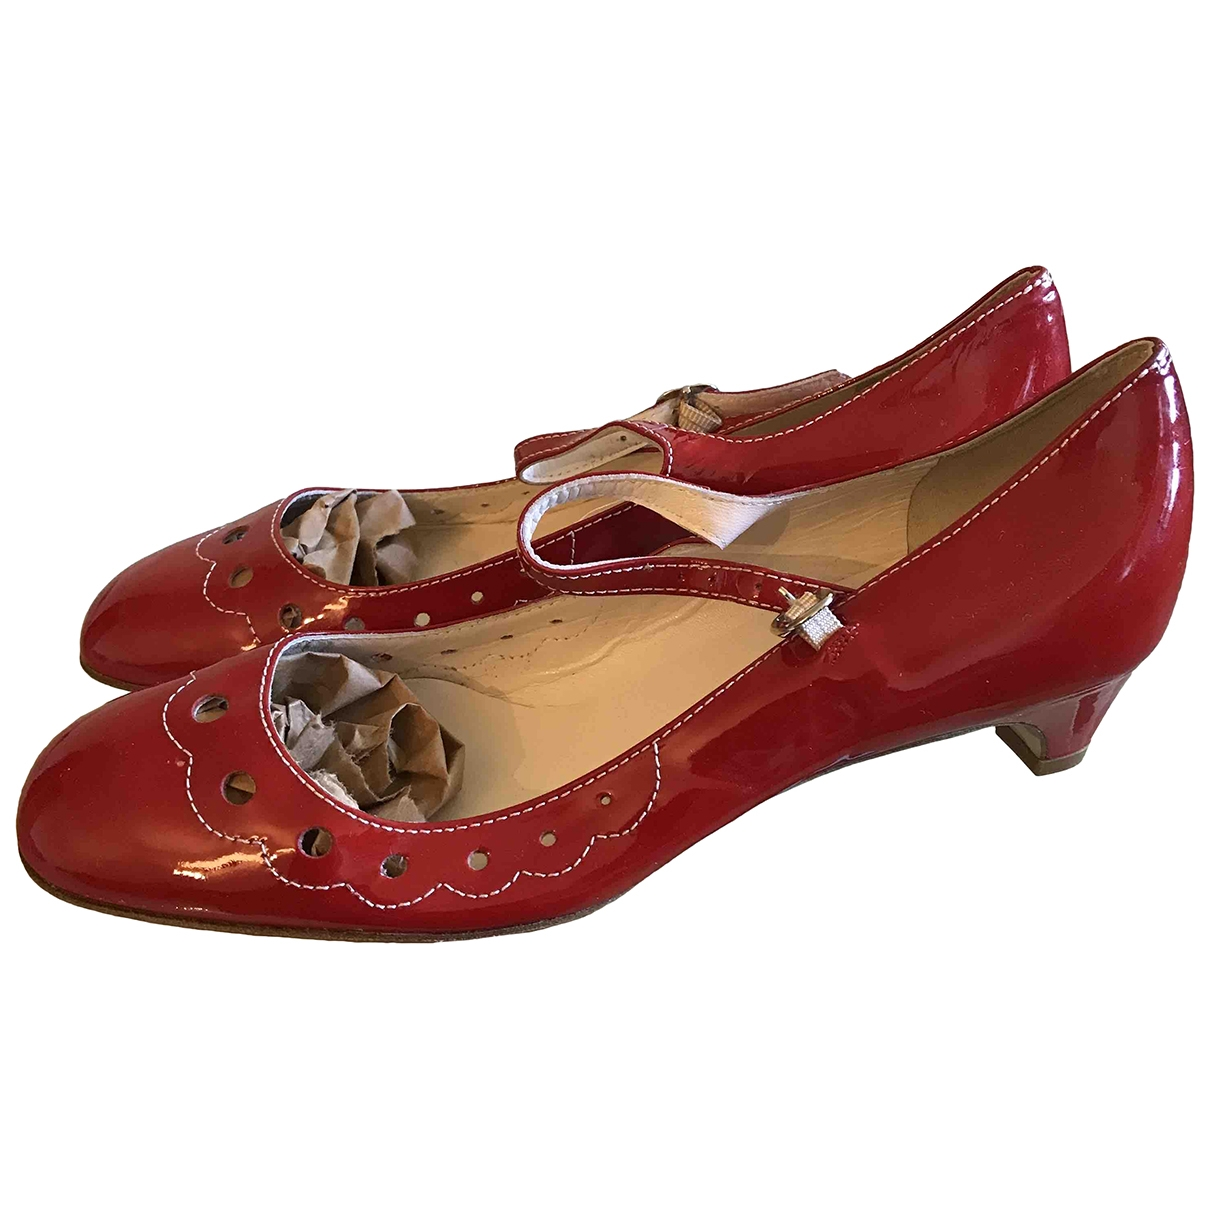 Marc Jacobs \N Red Patent leather Heels for Women 39 EU